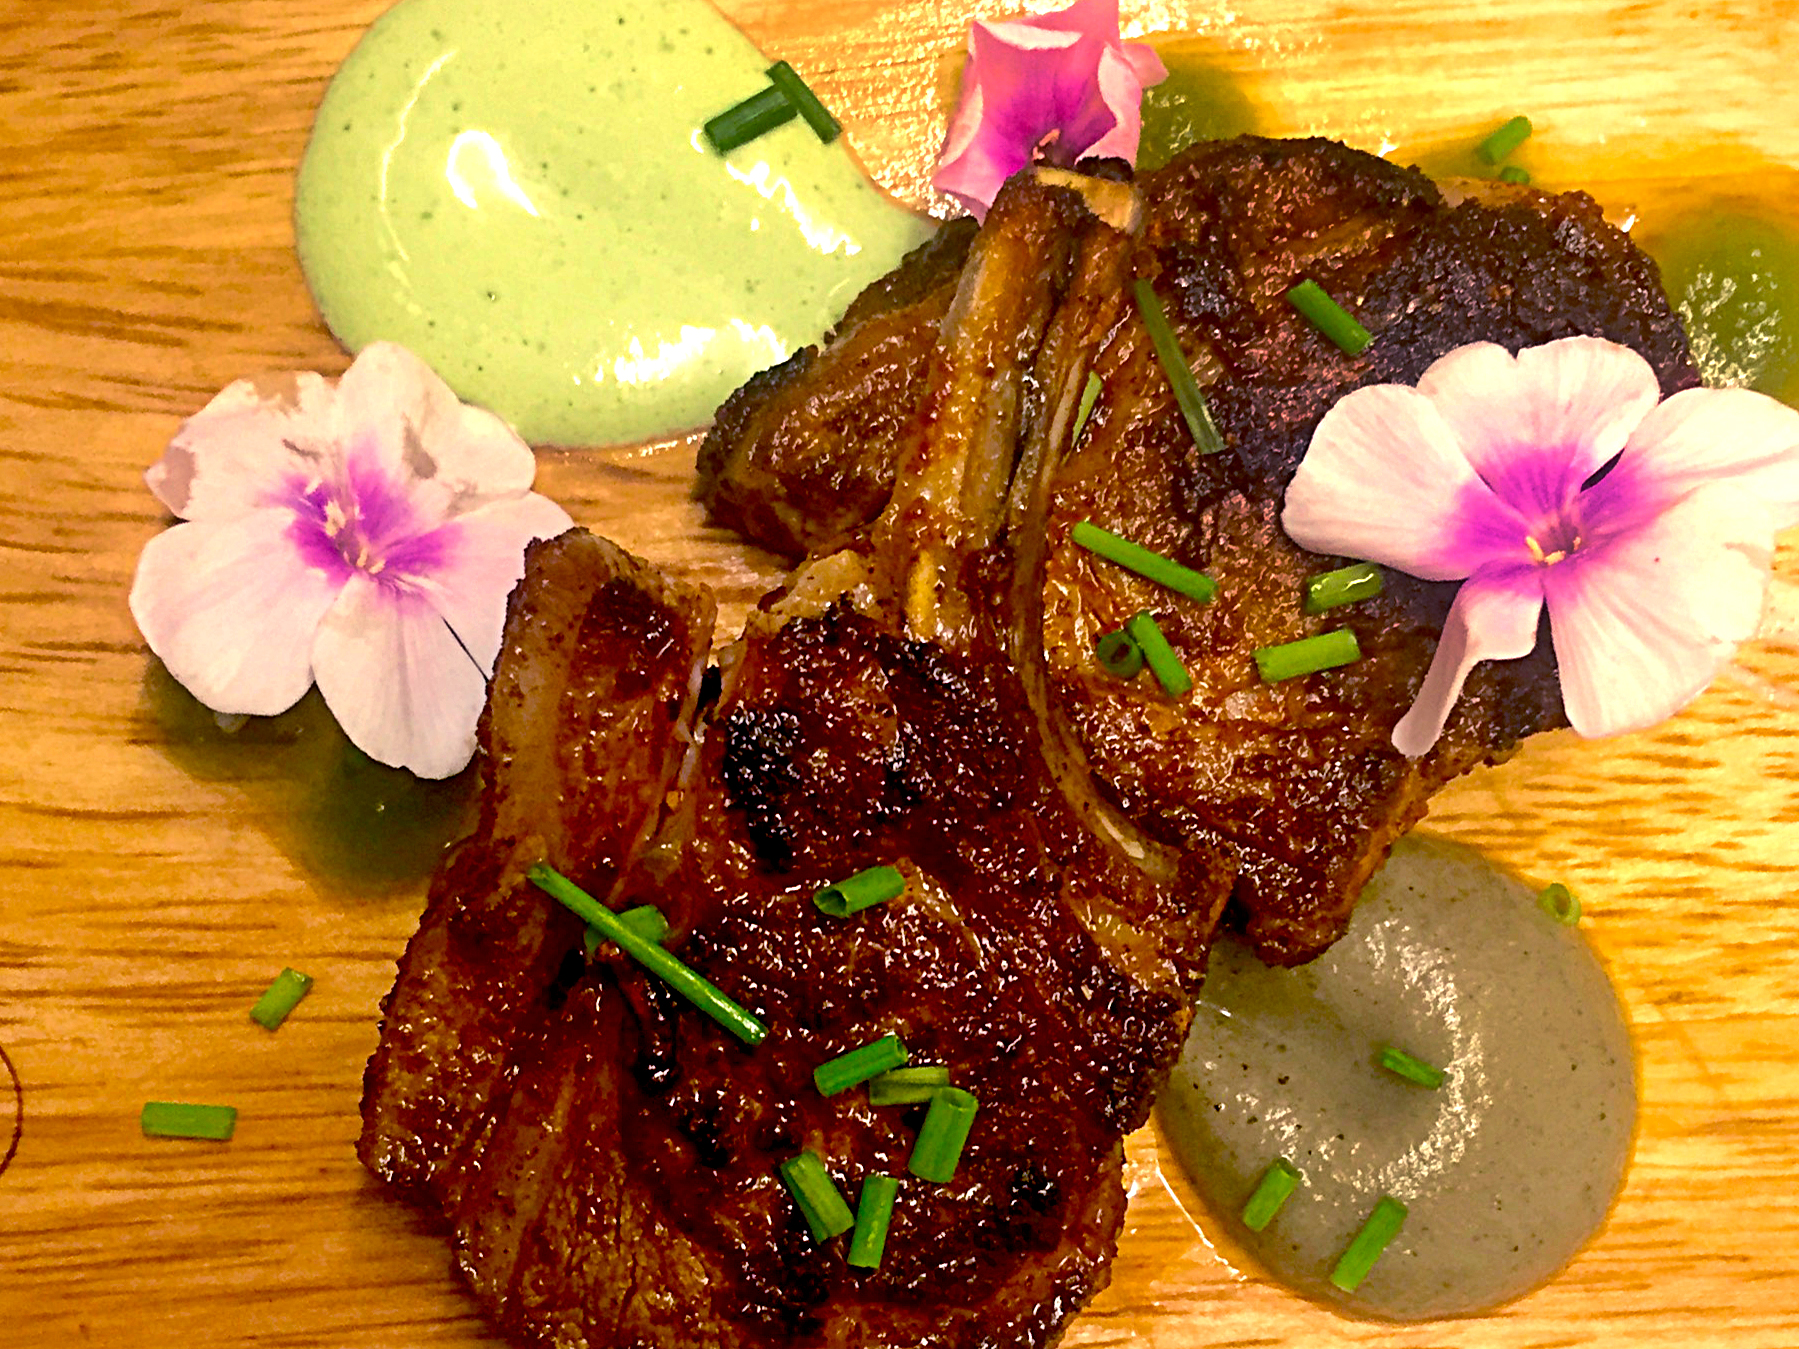 Moorish spiced Lamb cutlets served with a smoked aubergine puree, lemon, mint & yoghurt dressing & c